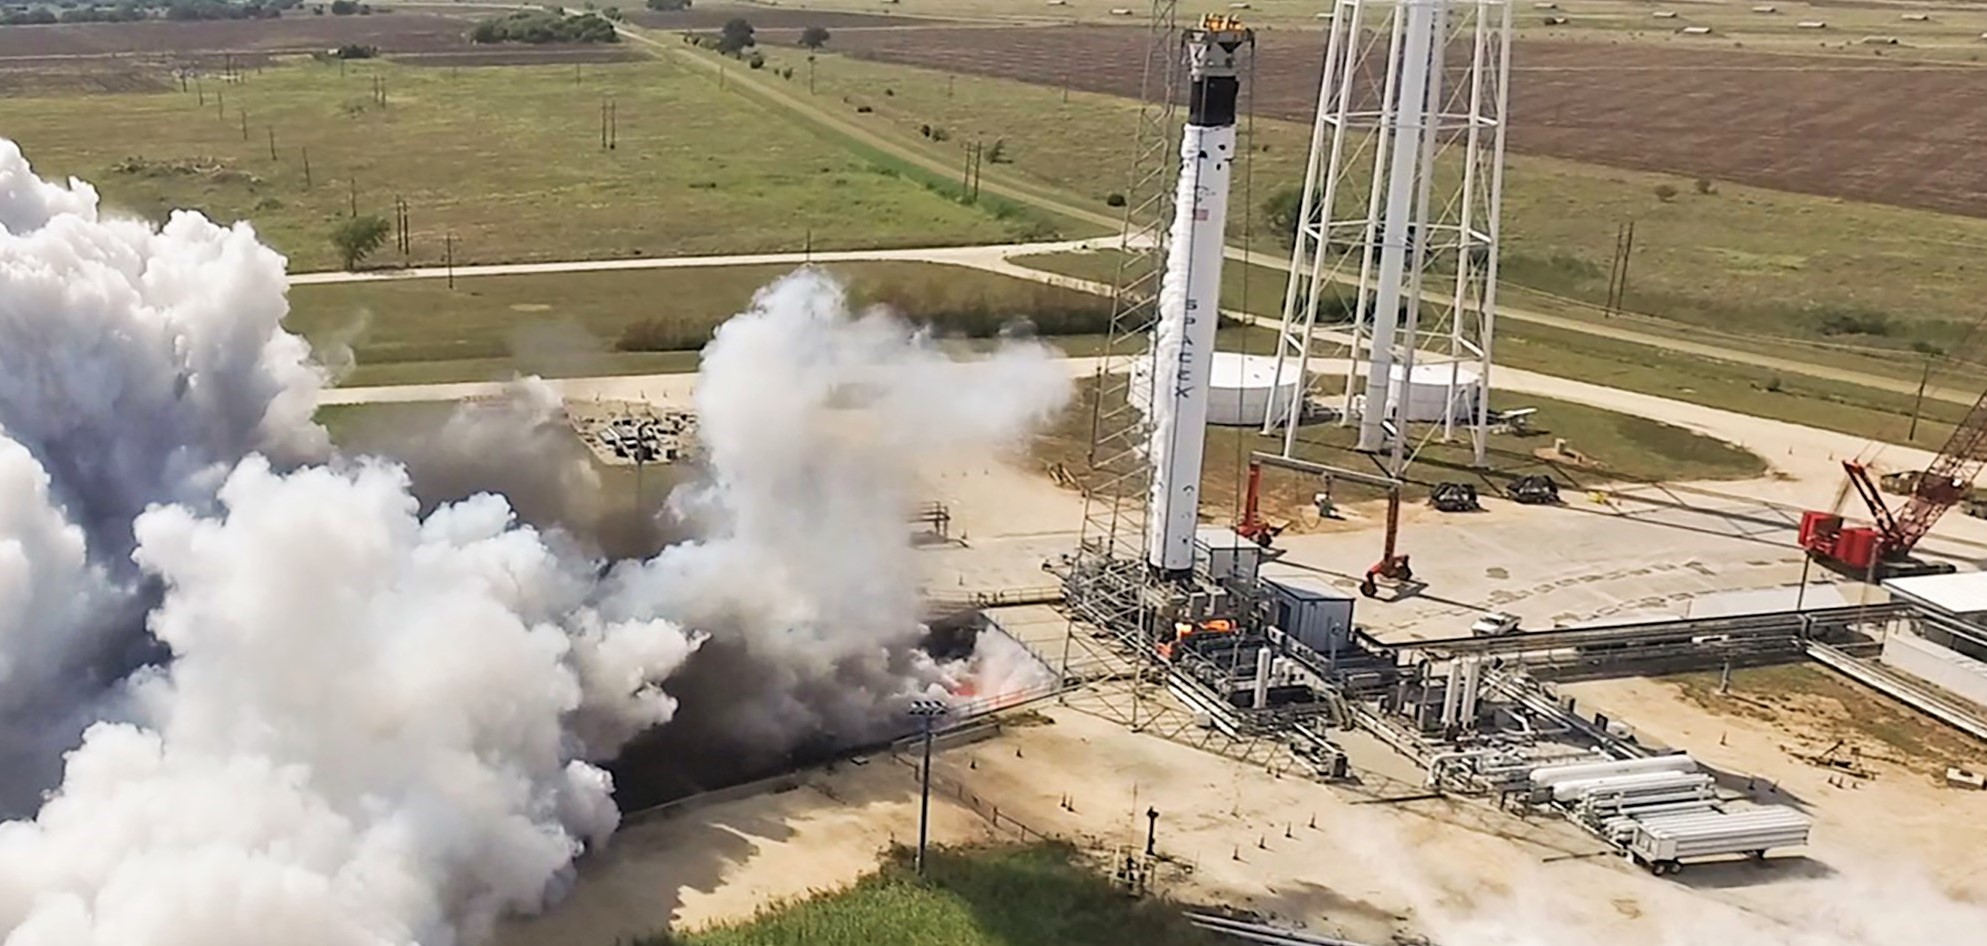 Falcon 9 B1058 Crew Dragon Demo-2 static fire McGregor TX 082919 (SpaceX) 1 crop